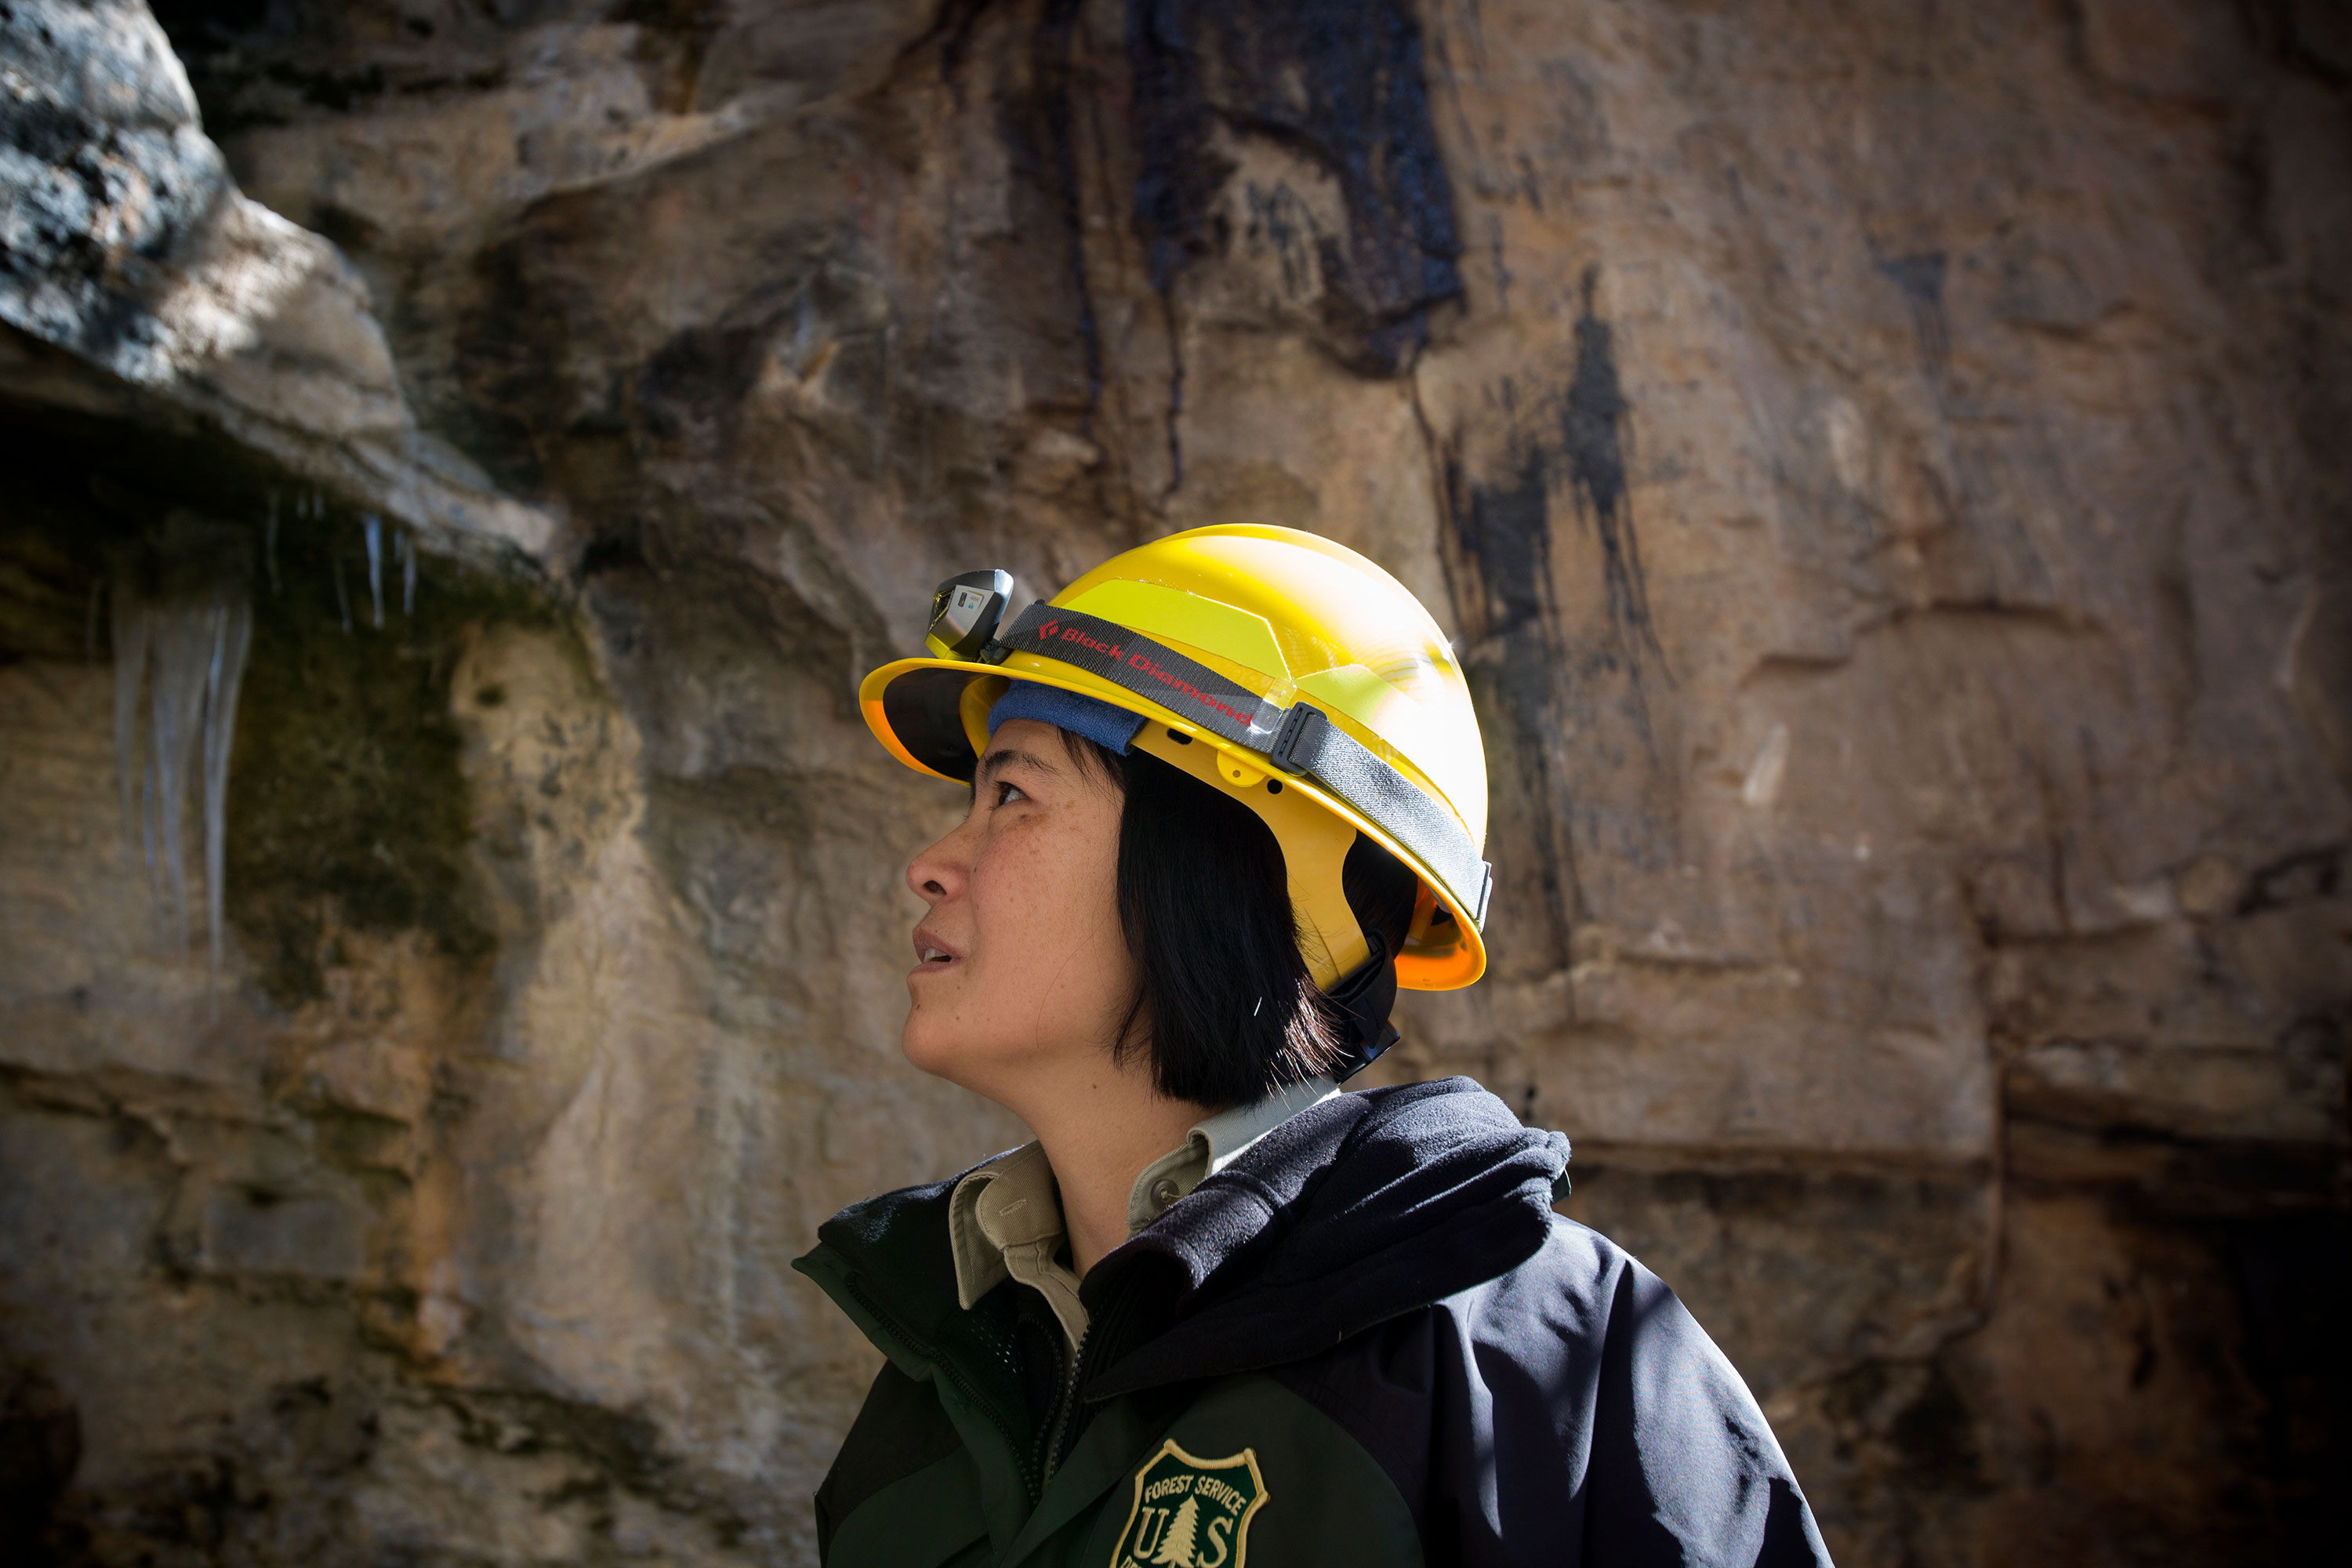 Wildlife biologist Masako Wright examines the entrance of Logan Cave on Wednesday, Feb. 15. Forest Service staff are looking for ways to limit access to the cave and protect bats after people began breaking through the current gate.